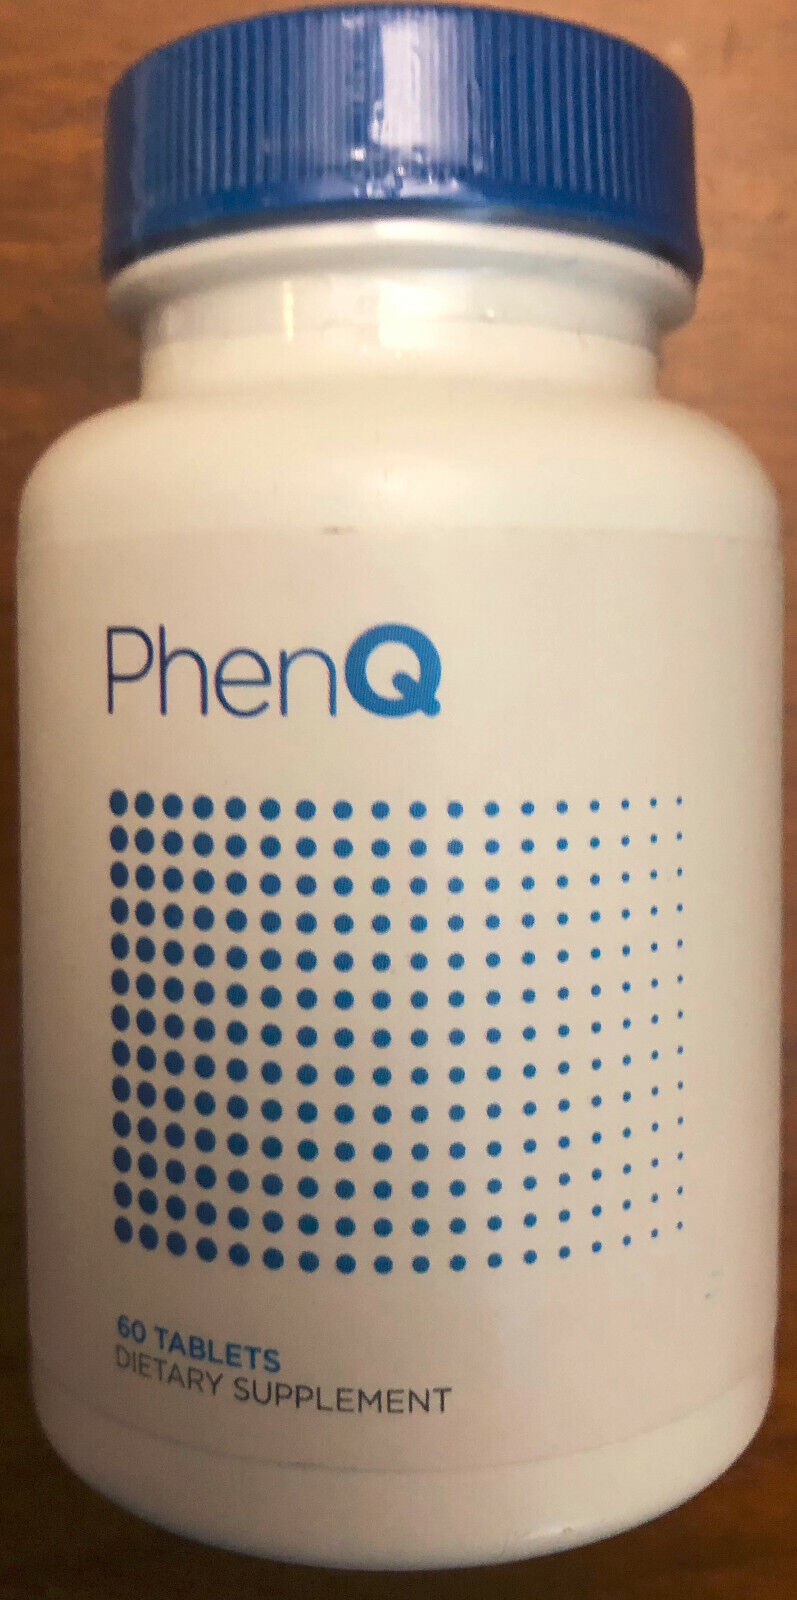 PHENQ - PHEN Q - BEST DIET PILLS / WEIGHT LOSS SUPPLEMENTS - 60 CAPSULES